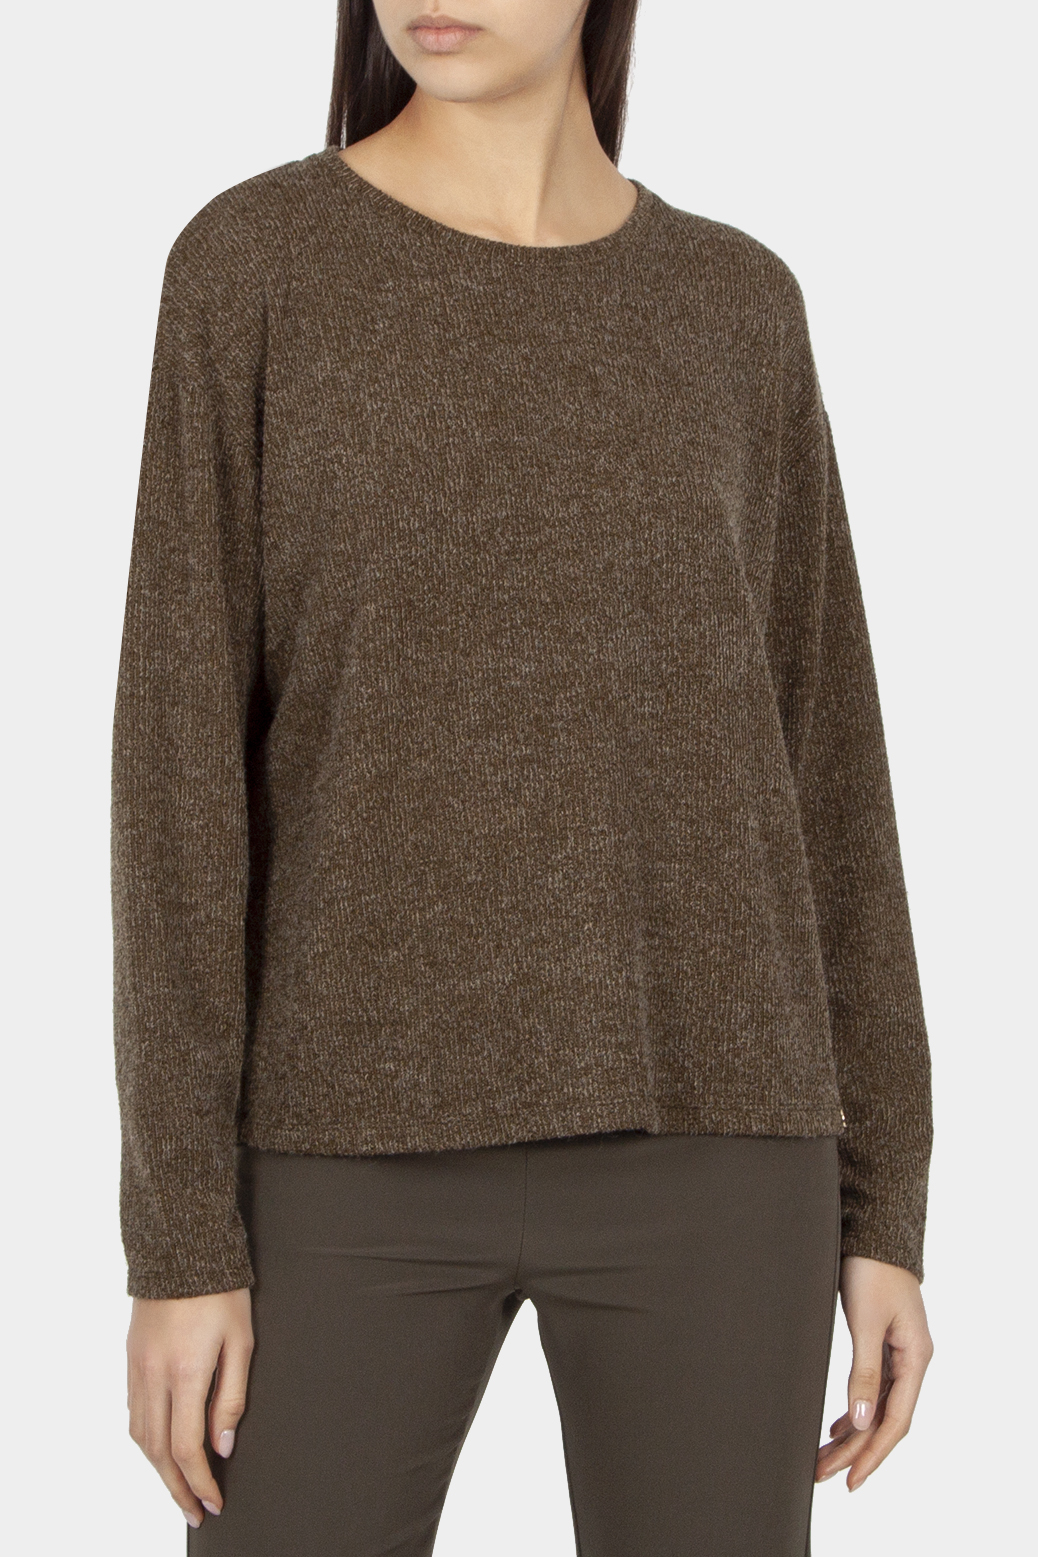 Top with back zipper